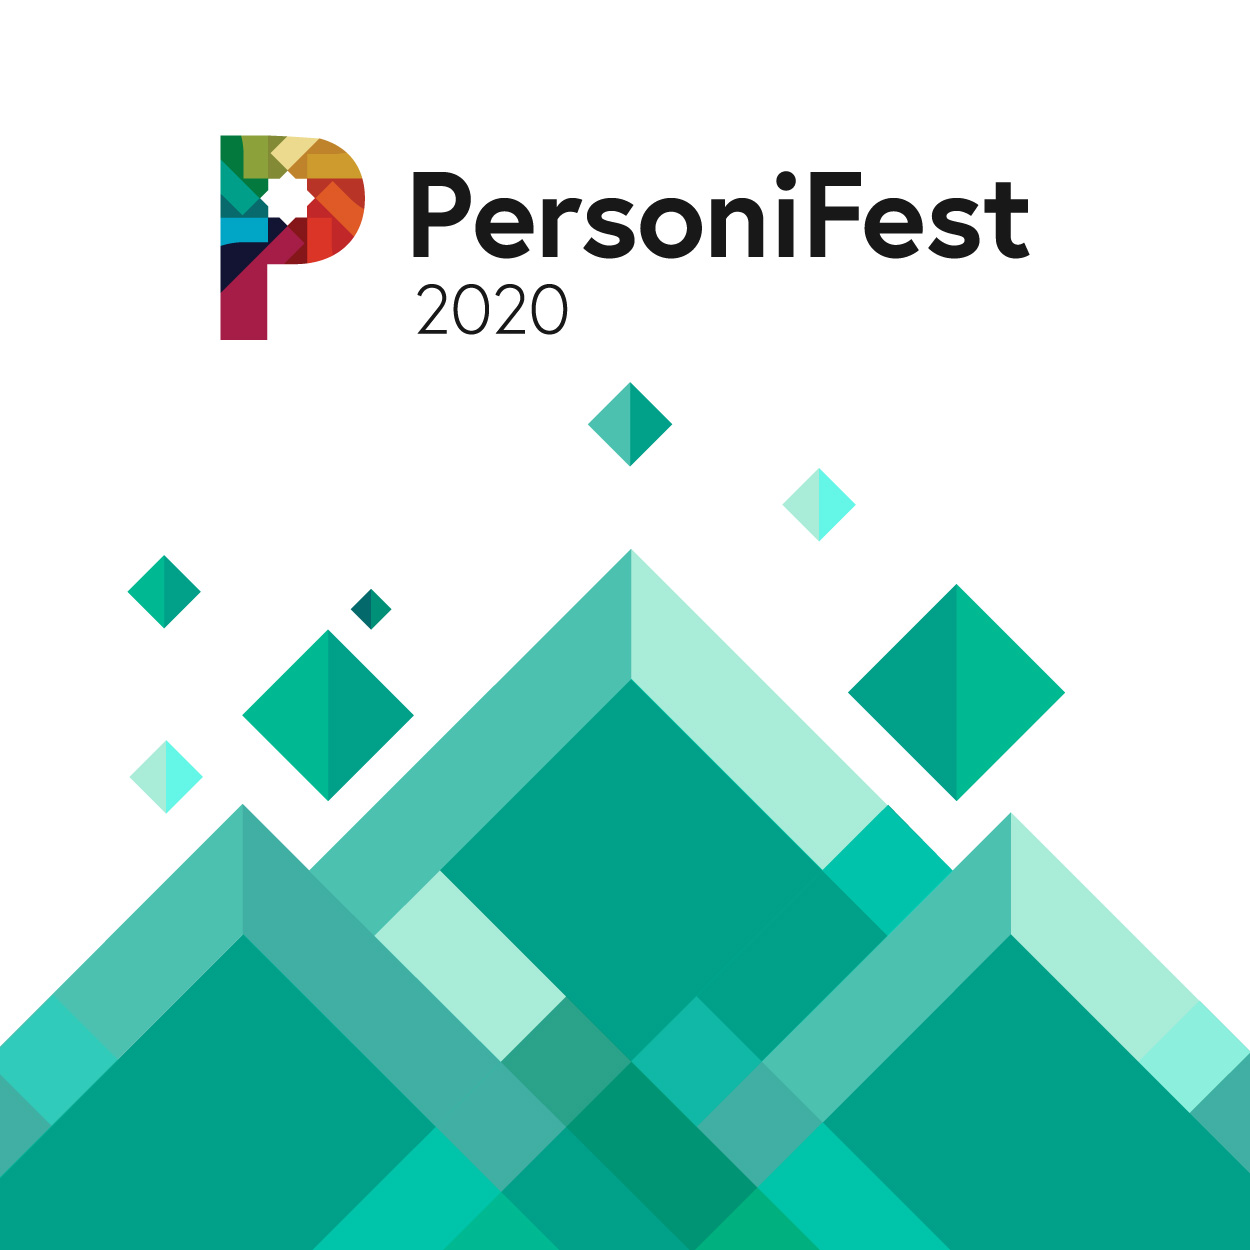 personifest2020-meta-image-600x600px-@2X